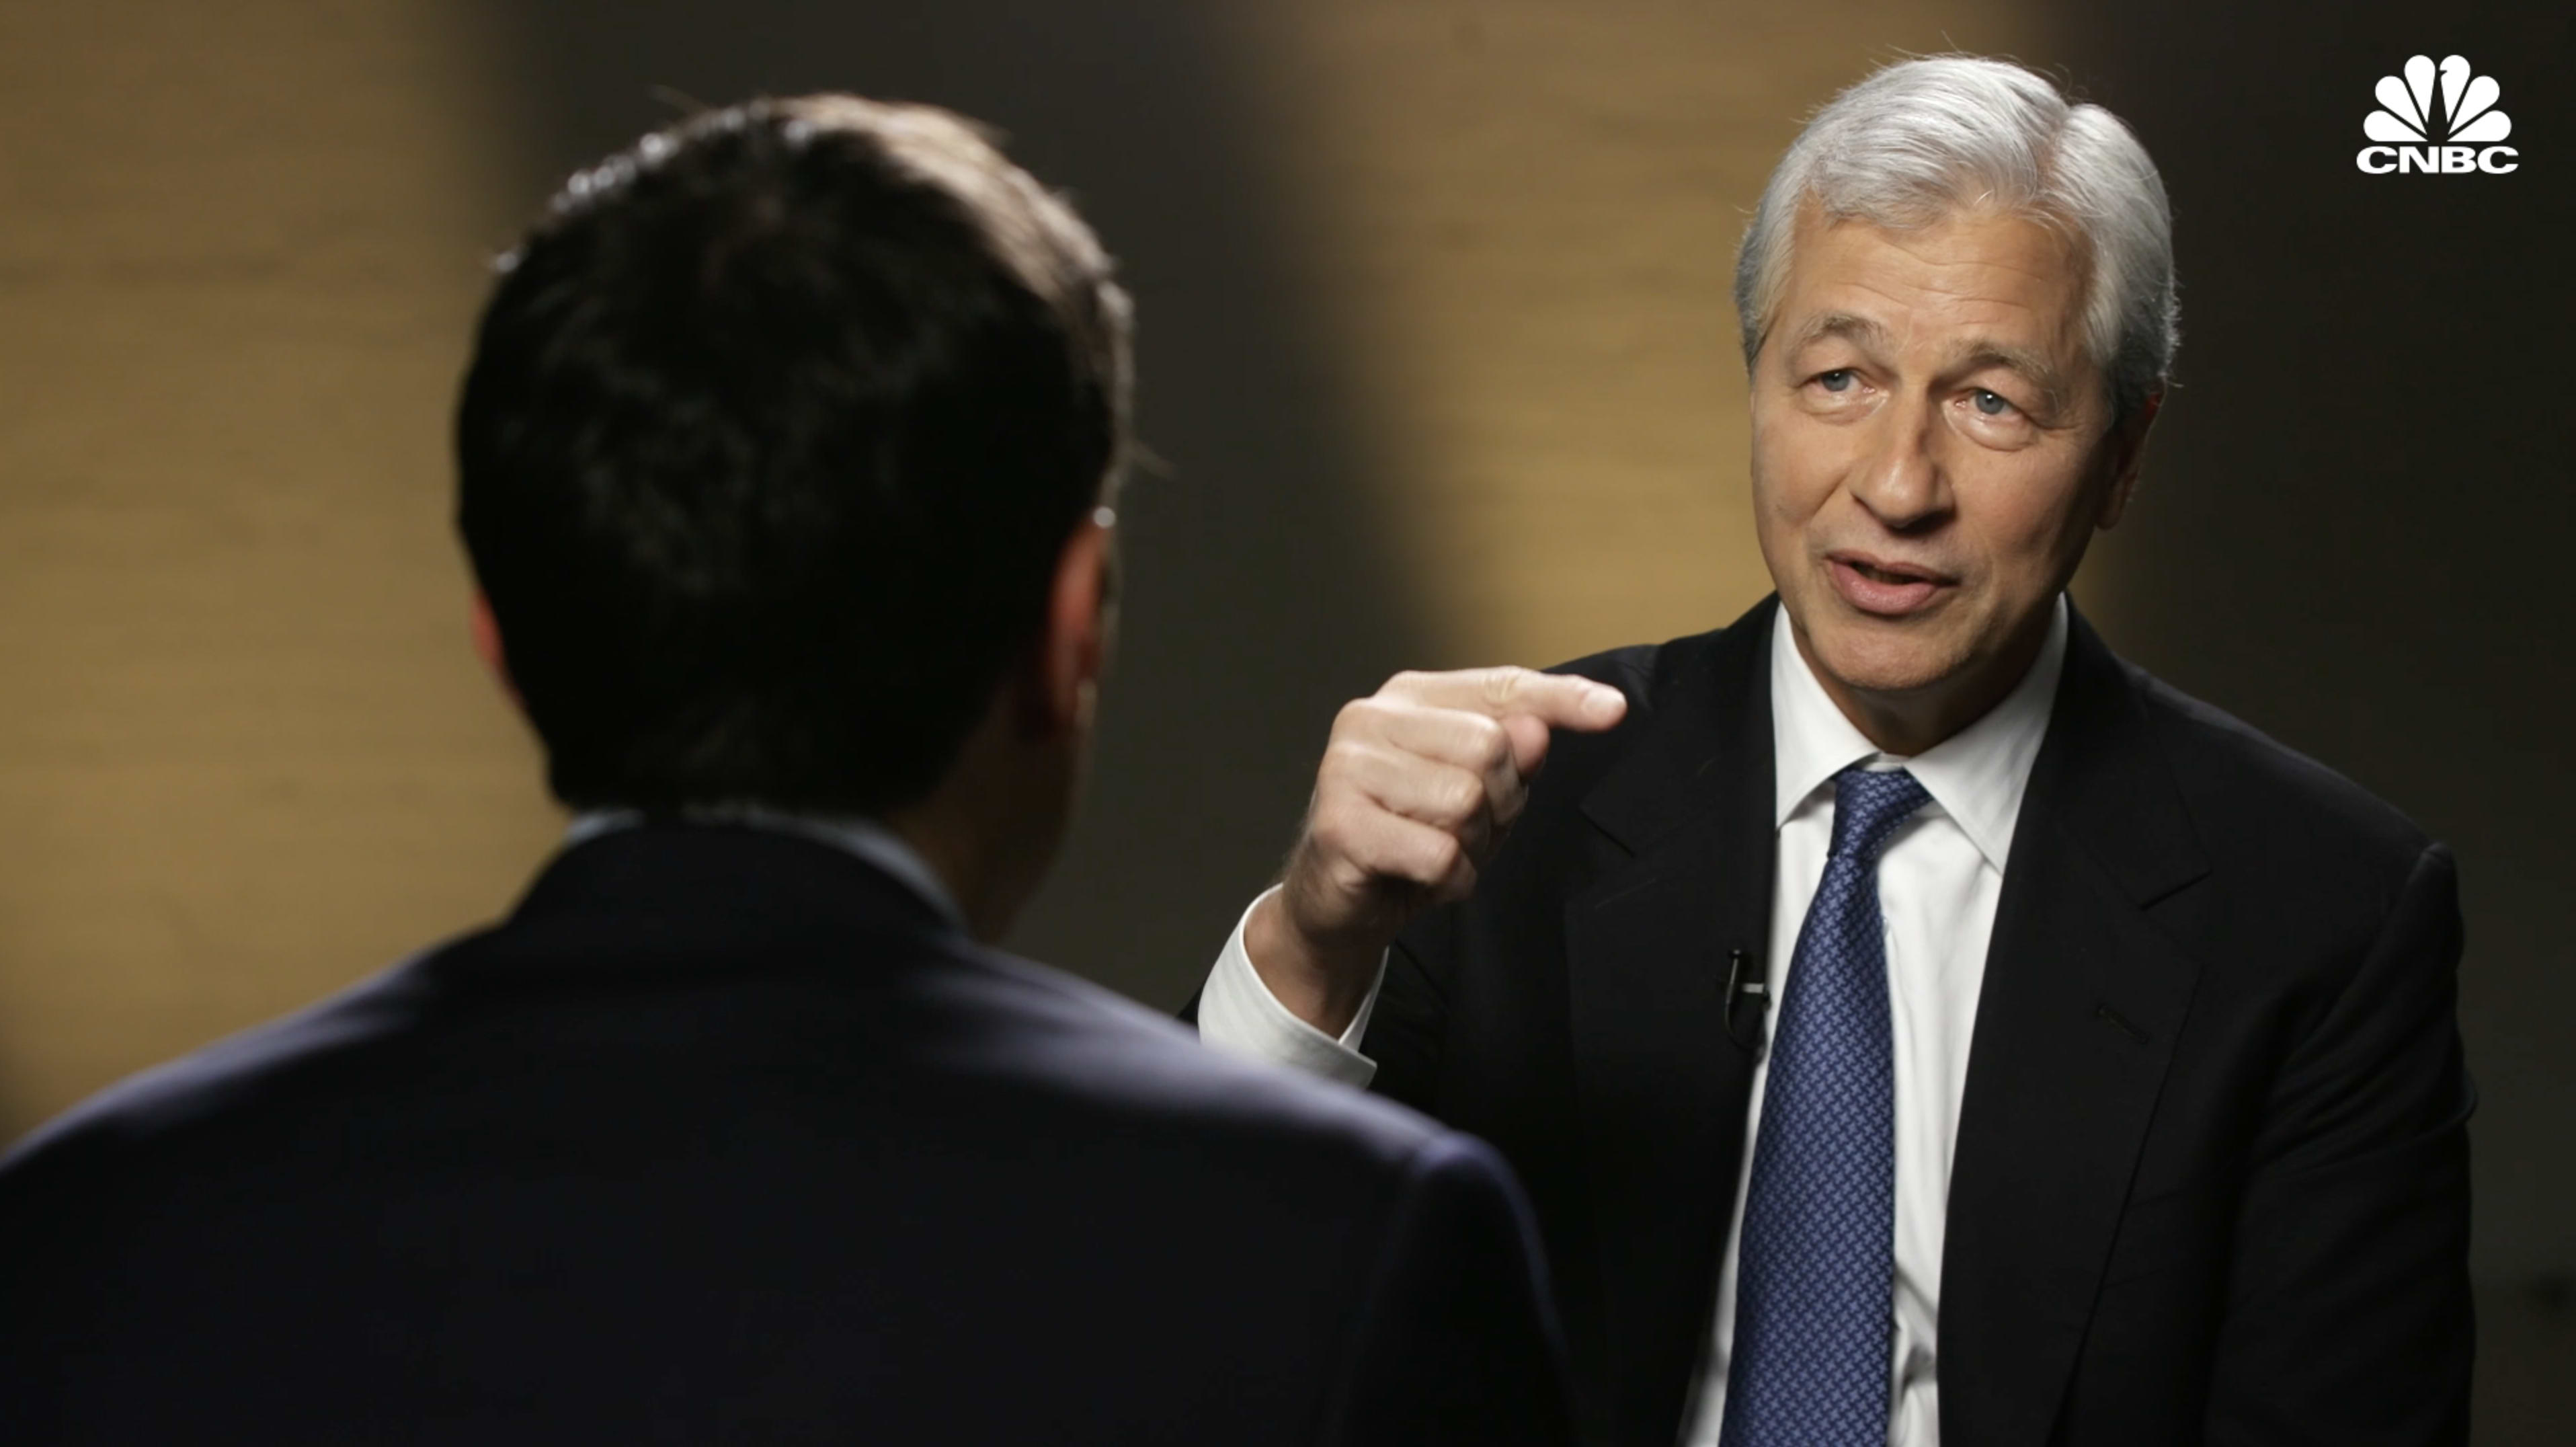 Watch CNBC's extended interview with Jamie Dimon on the 2008 financial  crisis